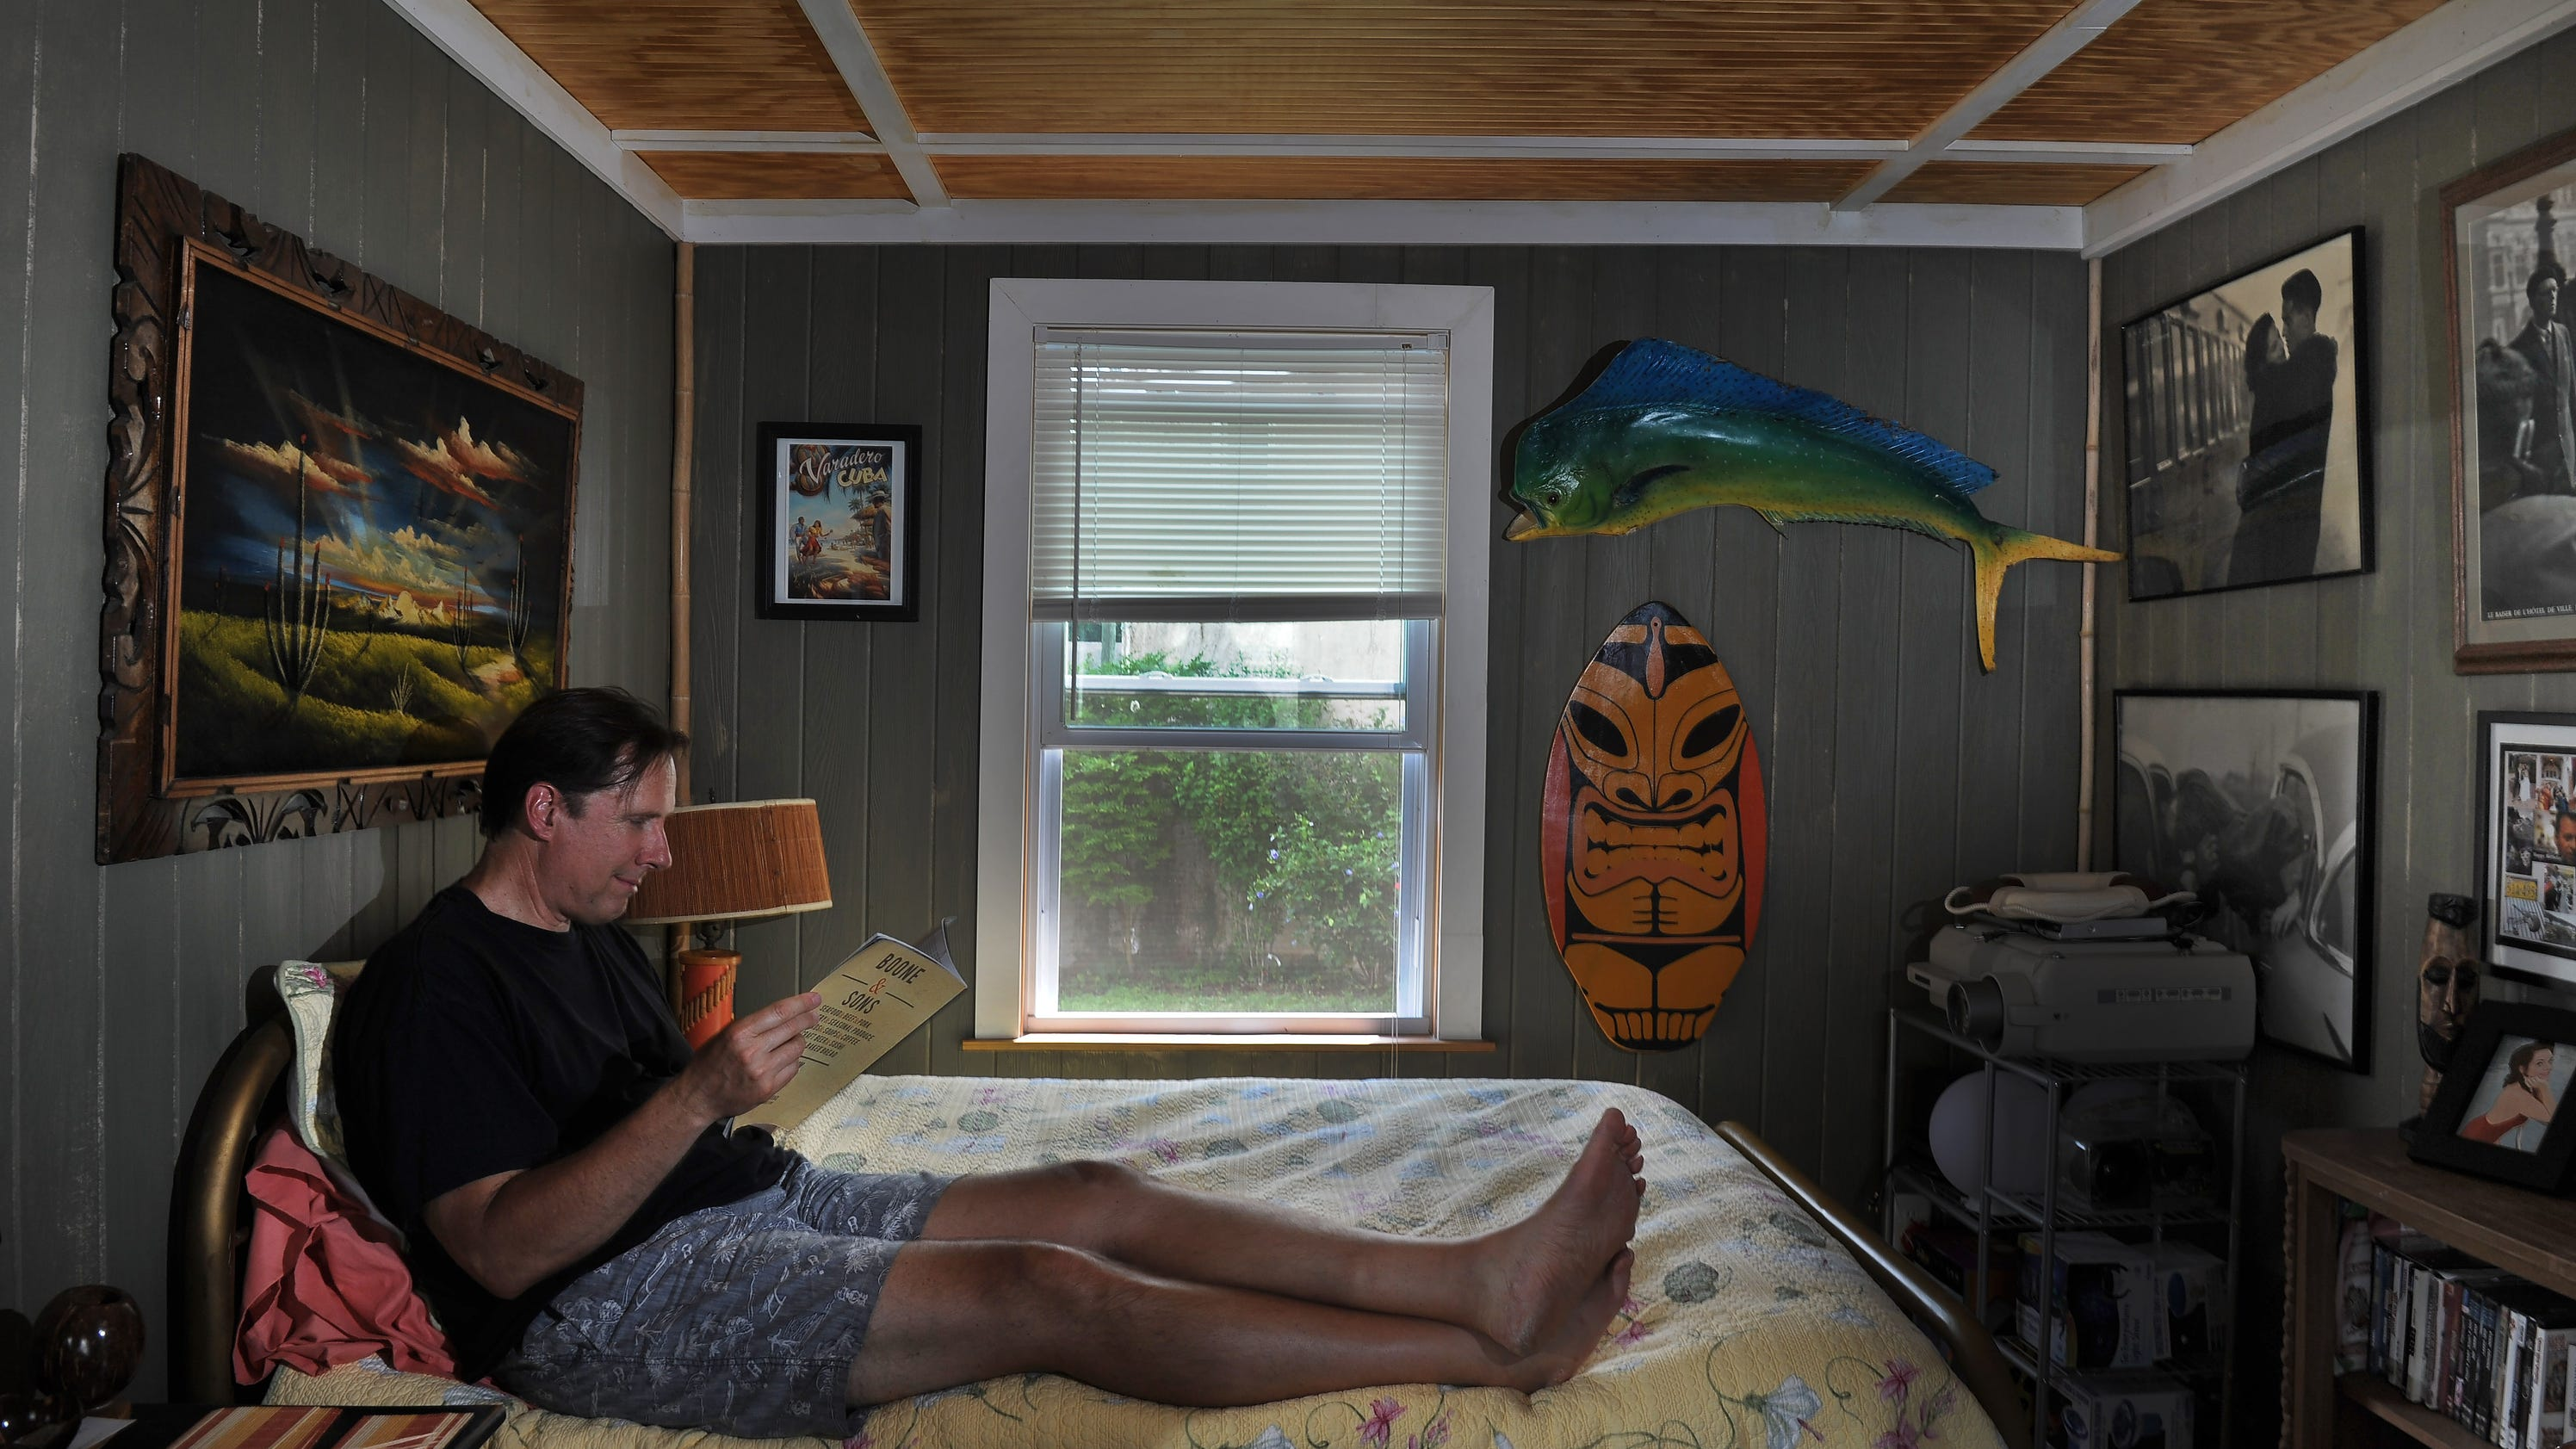 Airbnb Finds Fans But Raises Concerns In Music City